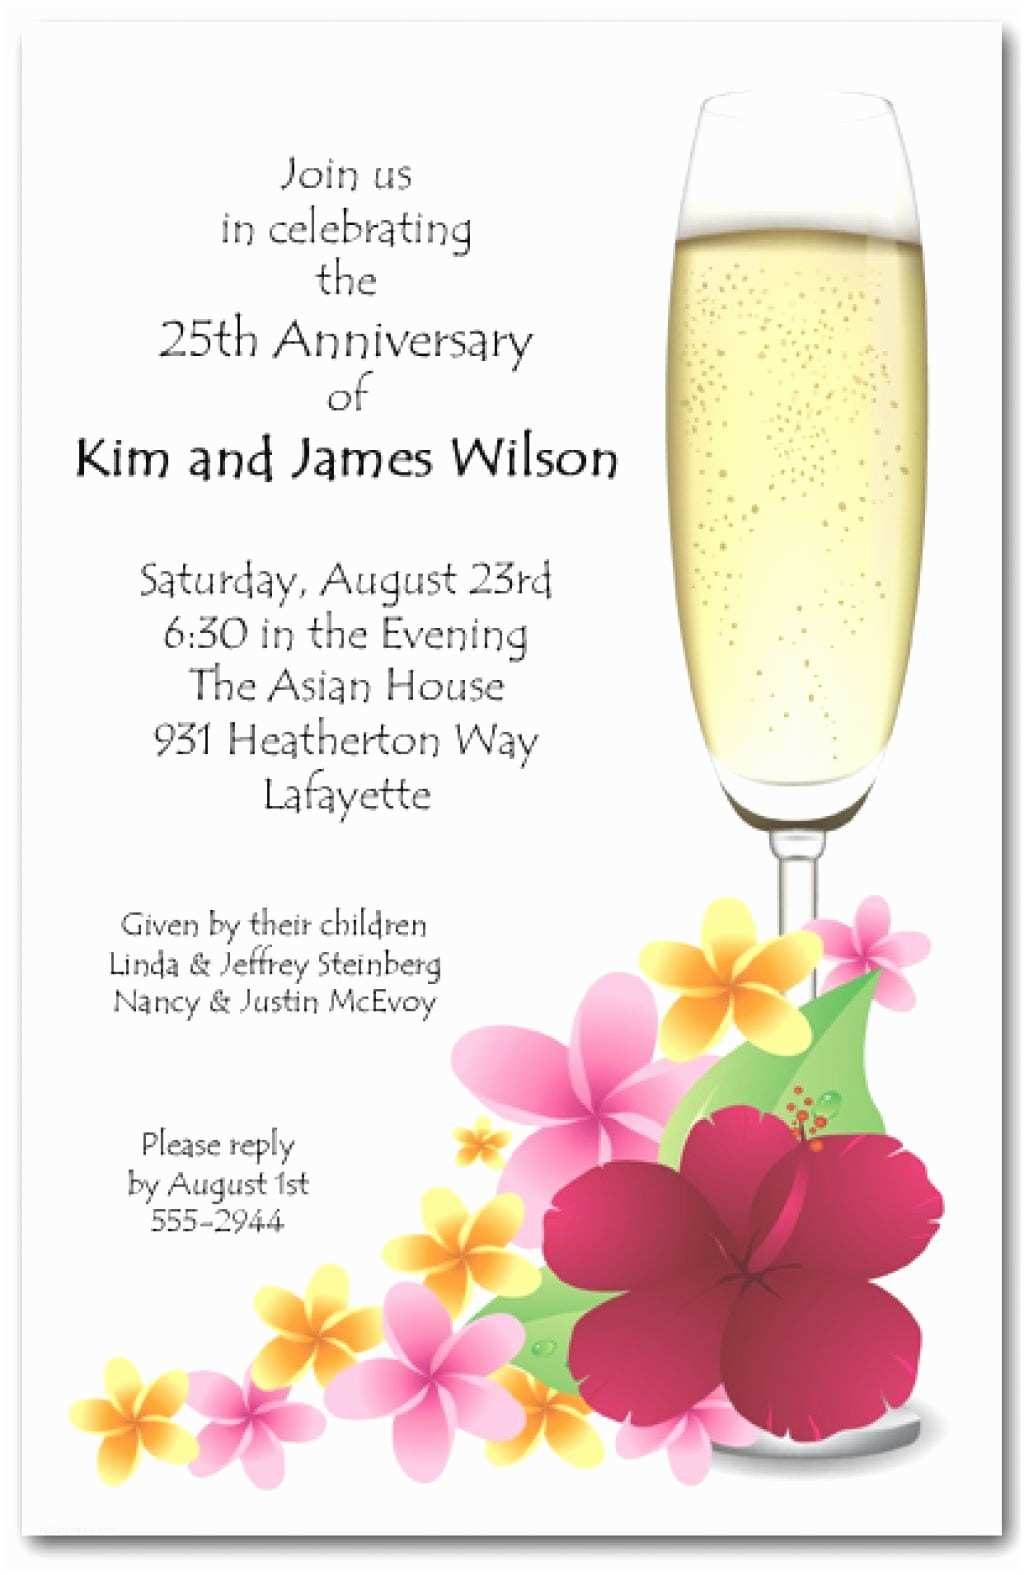 Cocktail Wedding Invitations Wedding Cocktail Party Invitation Wording Mickey Mouse